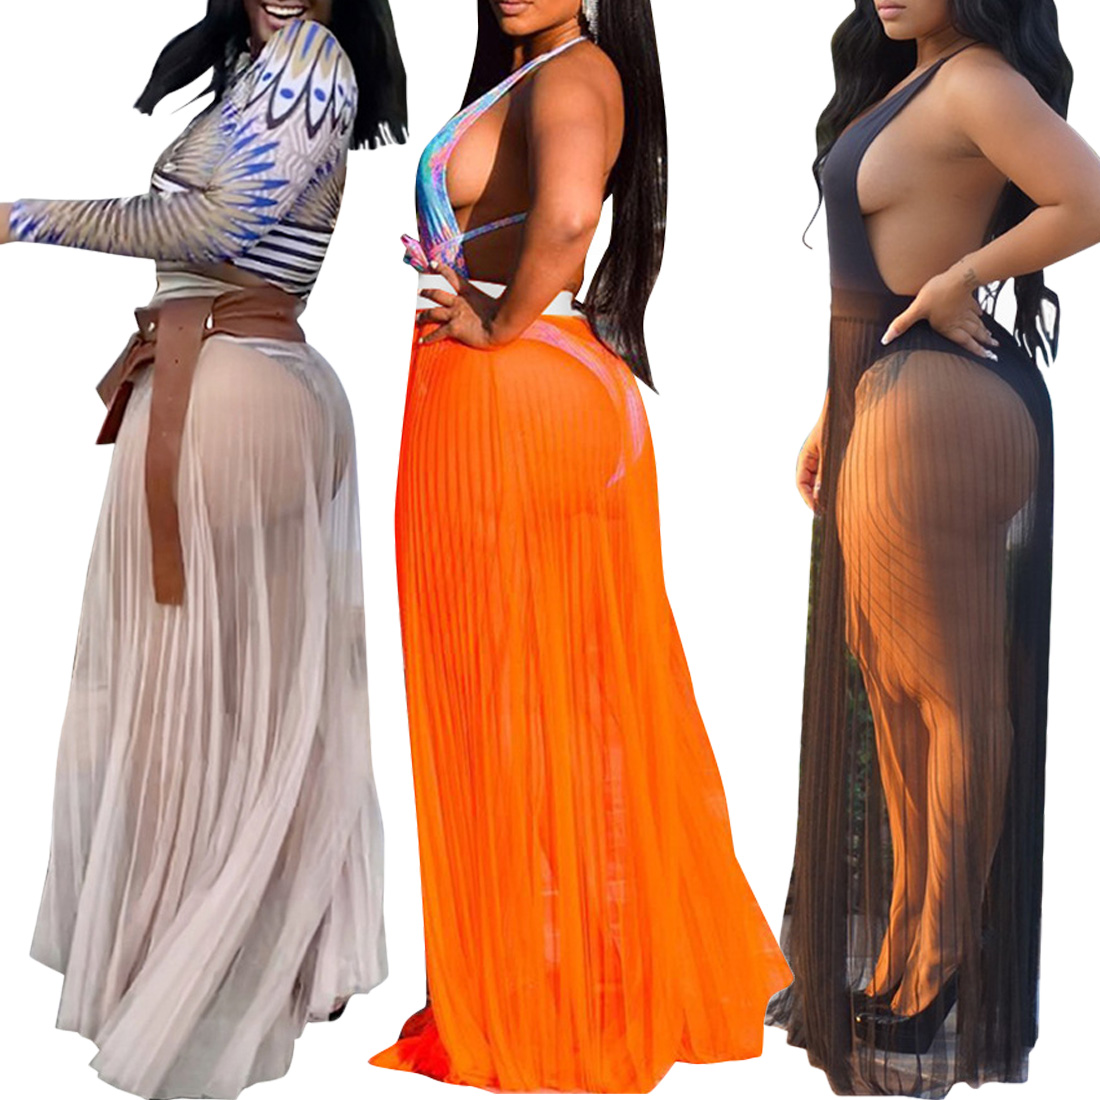 Stunning Sheer Maxi Beach Skirt Beach Wear Cover Up Sarong 3 Colours availab NEW